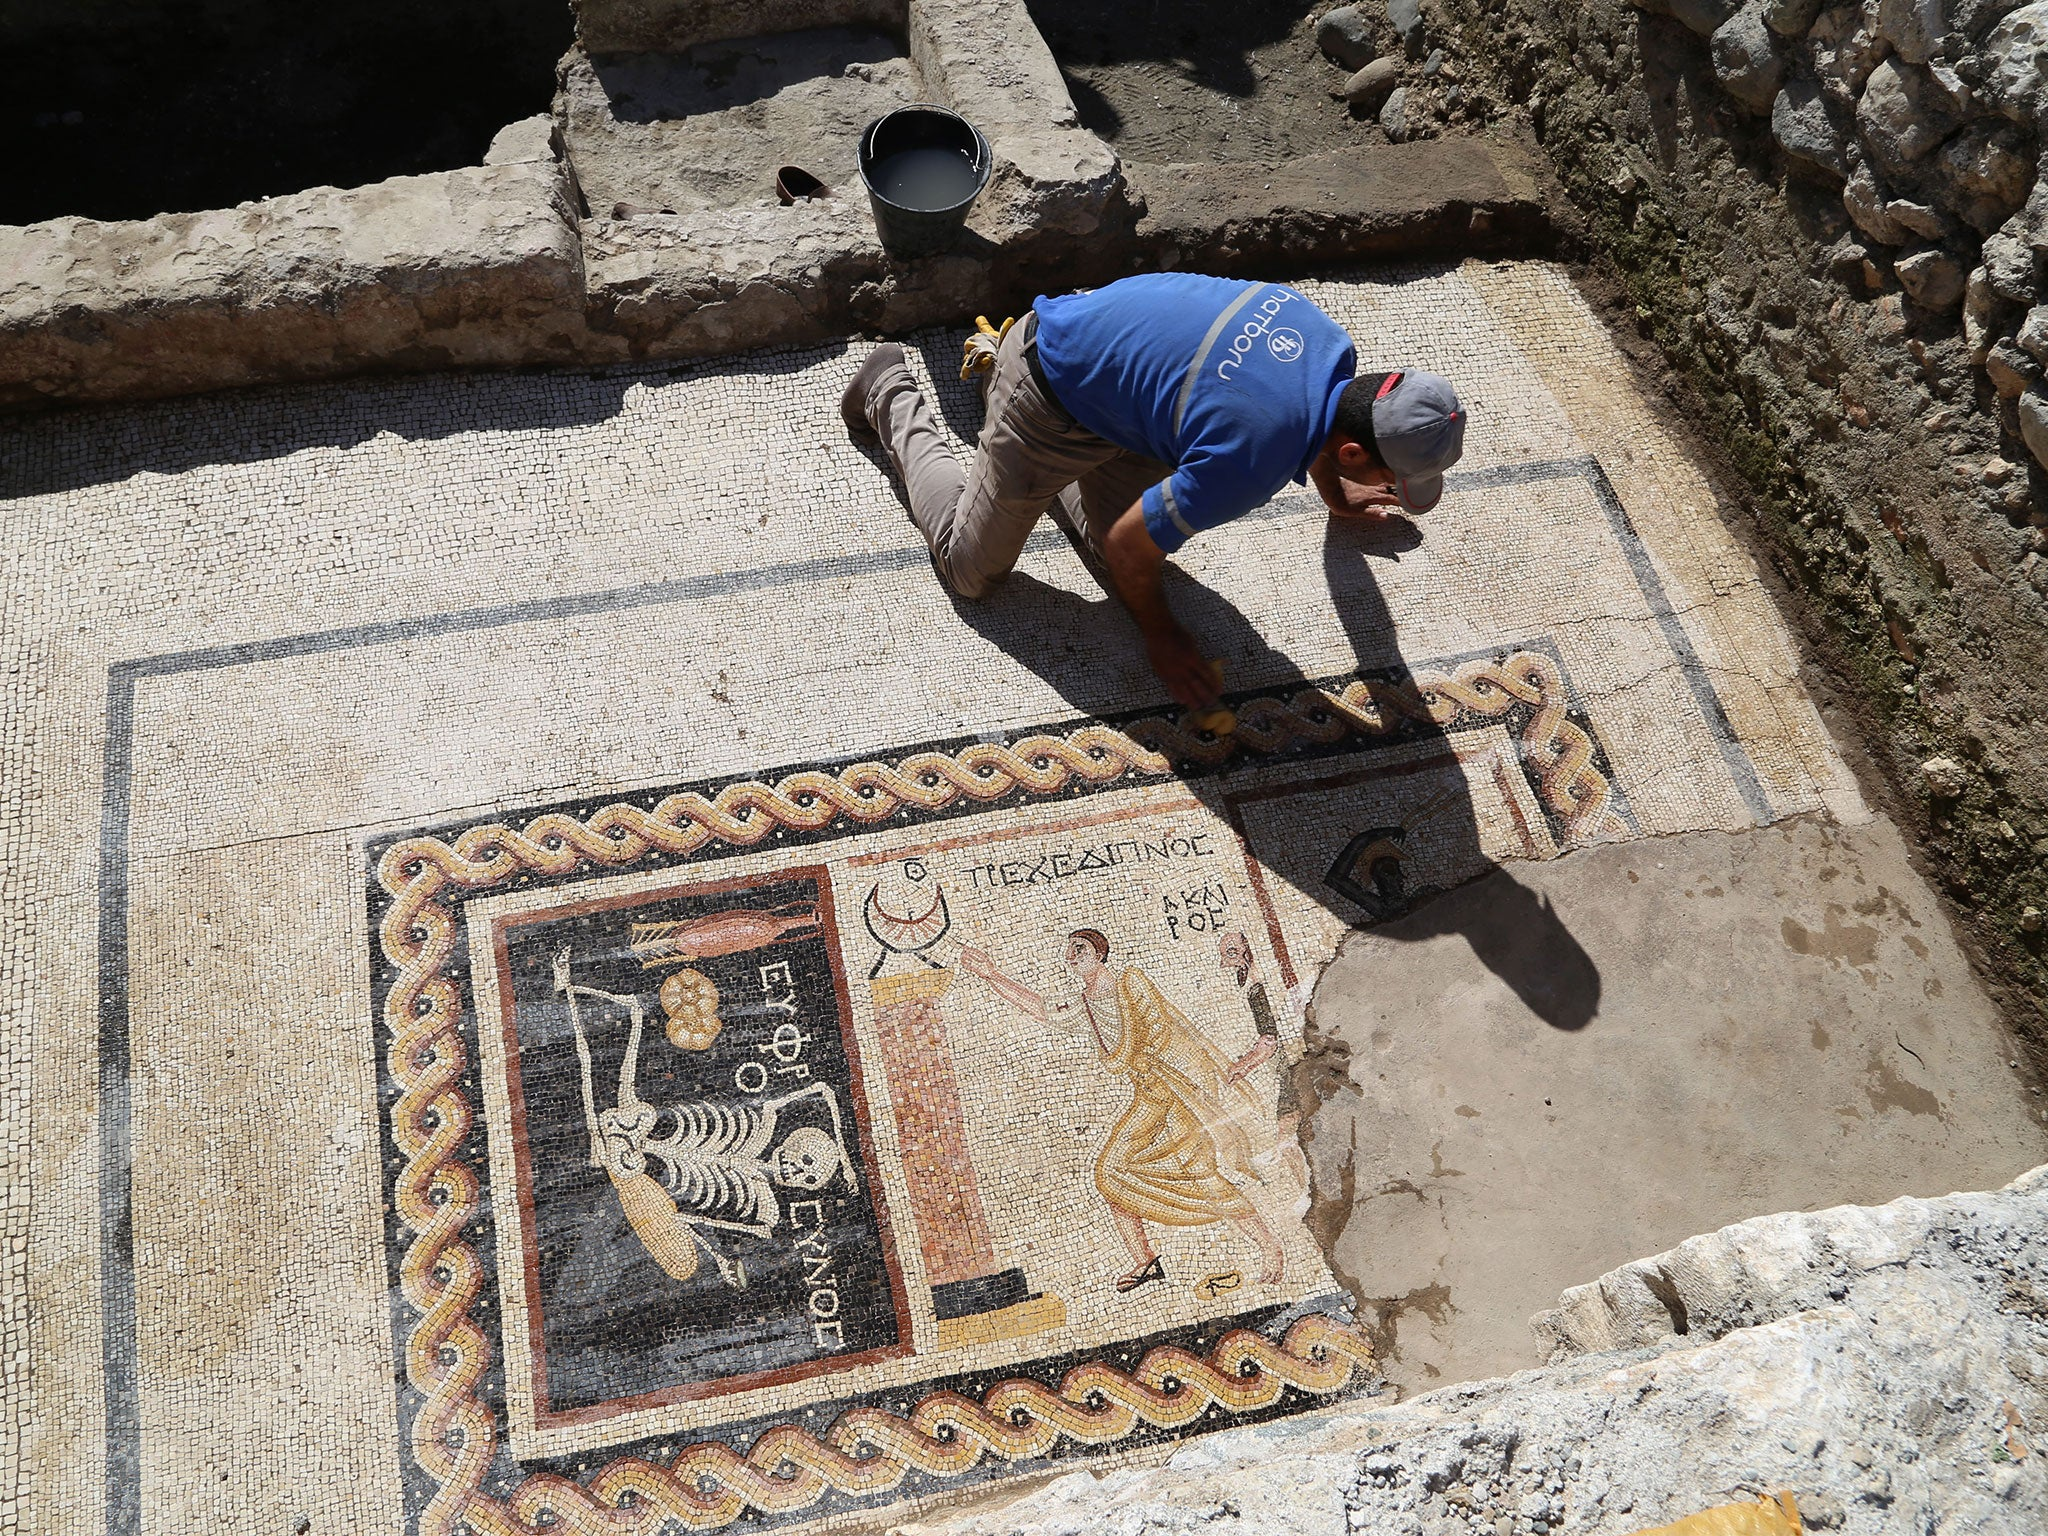 Archaeologists discover ancient mosaic with message: 'Be cheerful, enjoy your life'